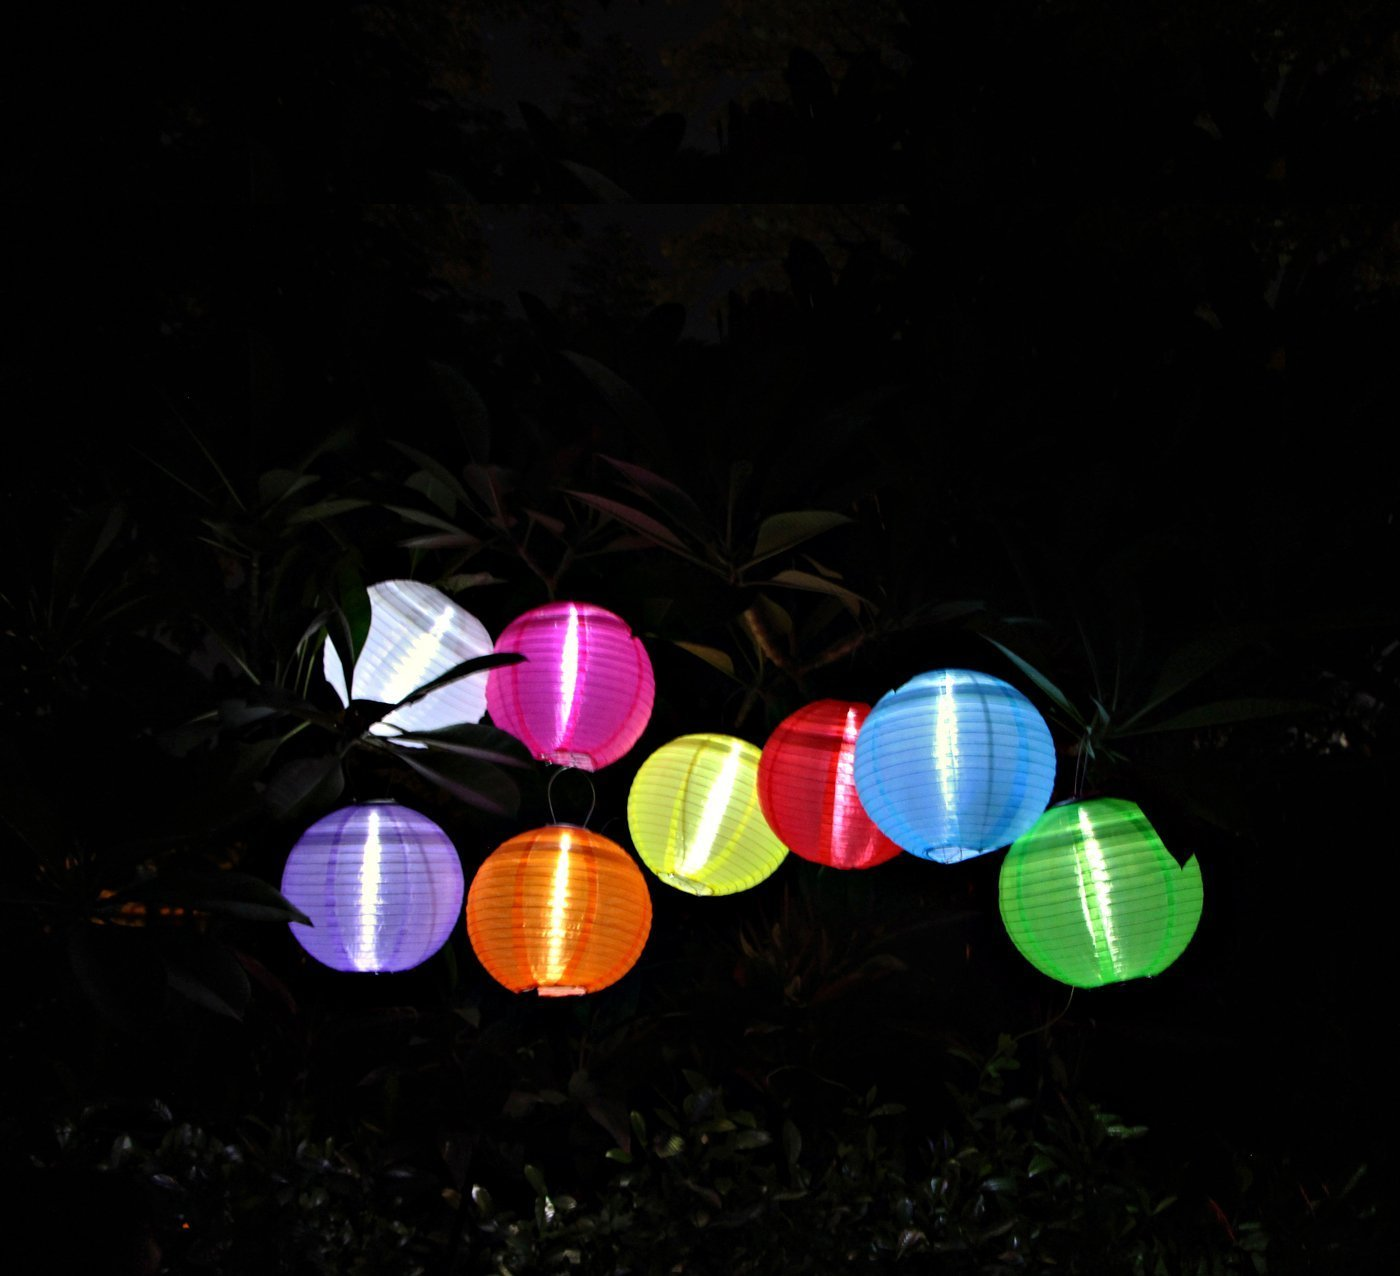 RioRand Chinese waterproof outdoor garden solar hanging LED light lanterns (Red/green/blue/yellow) by RioRand (Image #5)